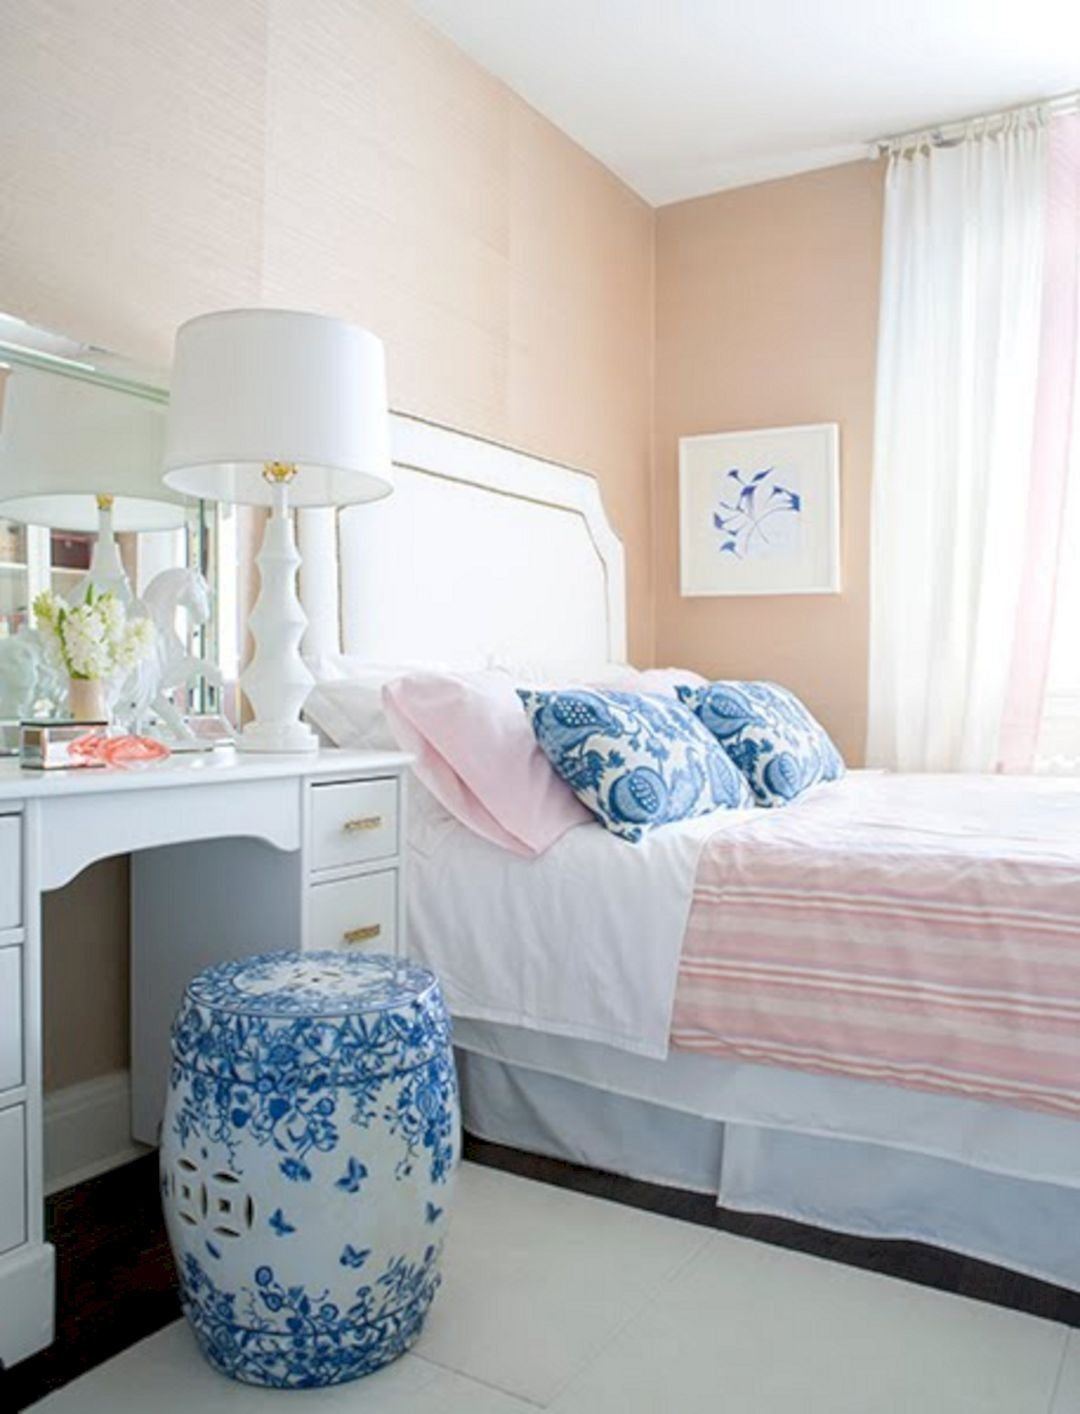 Best Peach White And Blue Bedroom 6 Peach White And Blue With Pictures